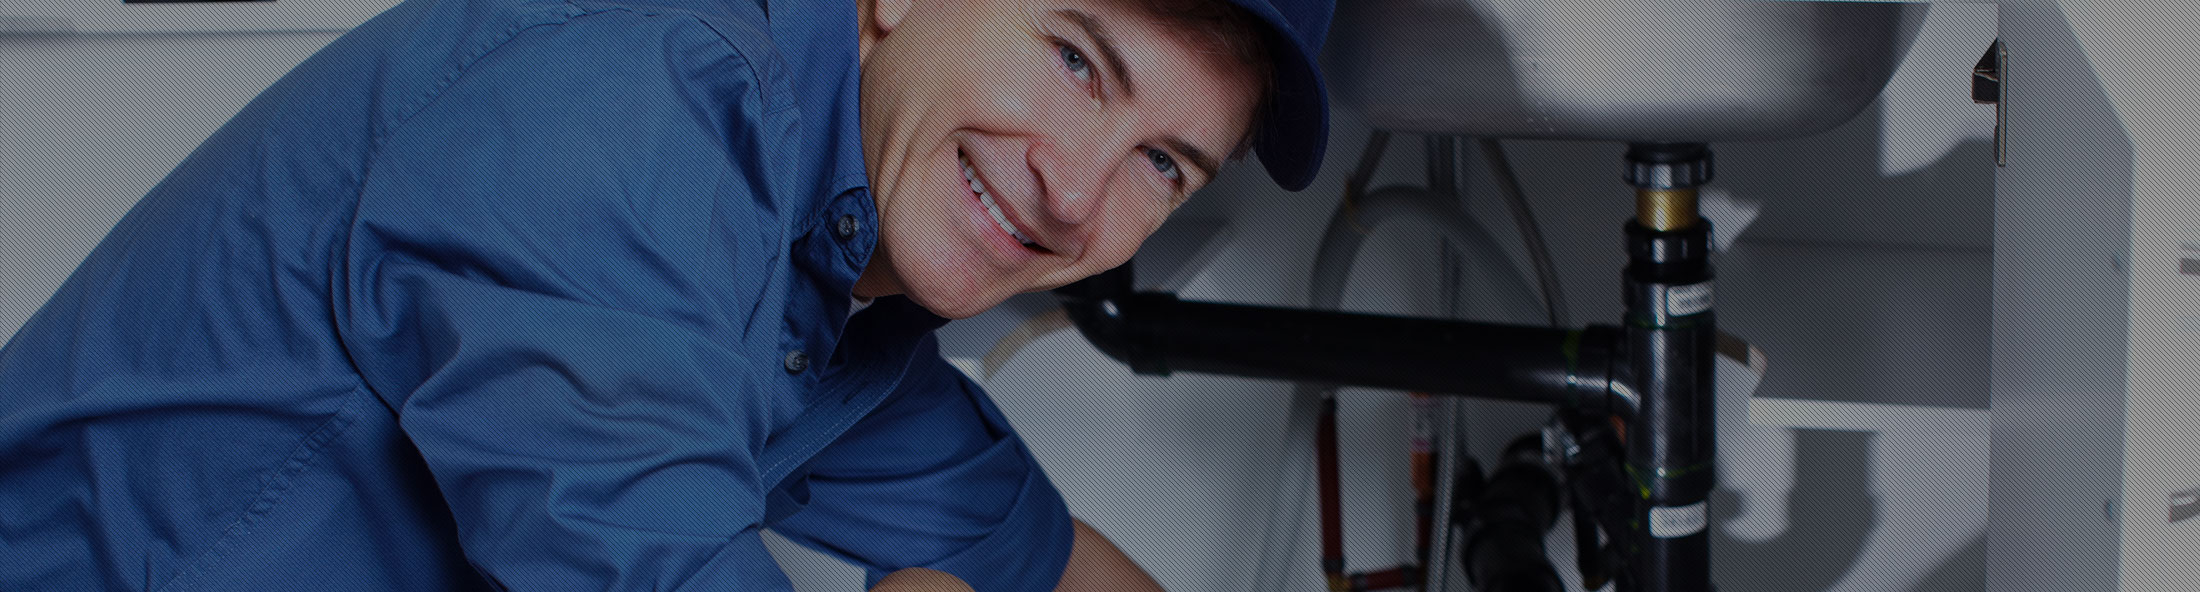 Plumbing Specialists in Mojave Heights, CA